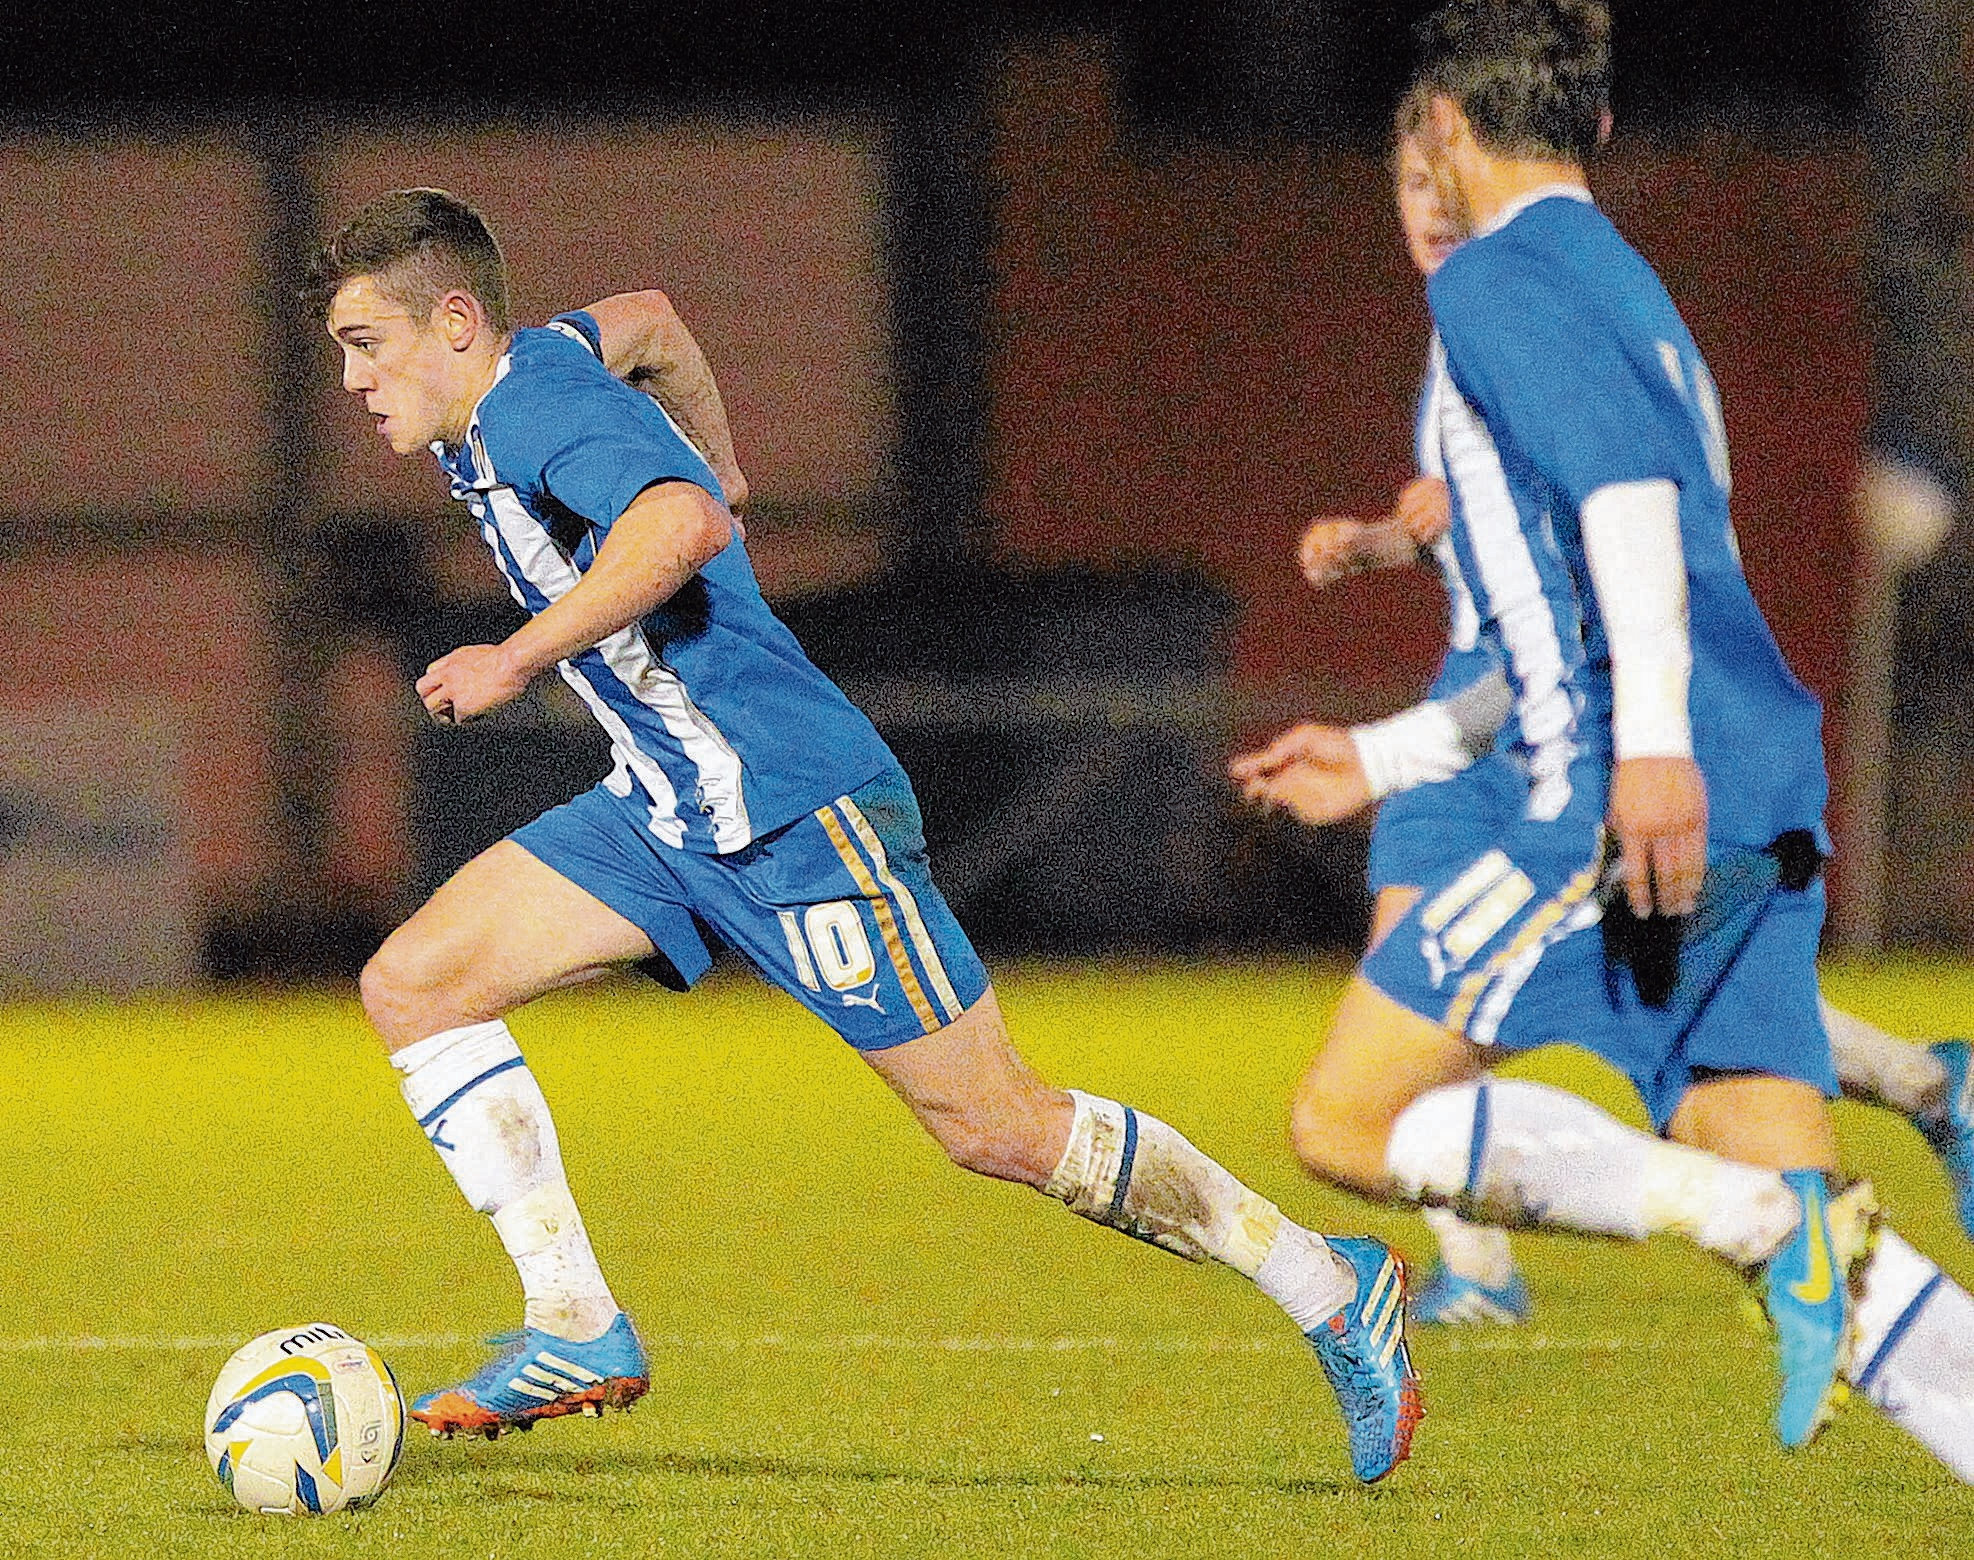 On target - Sammie Szmodics netted for Colchester United in their 4-1 friendly win over AFC Sudbury.